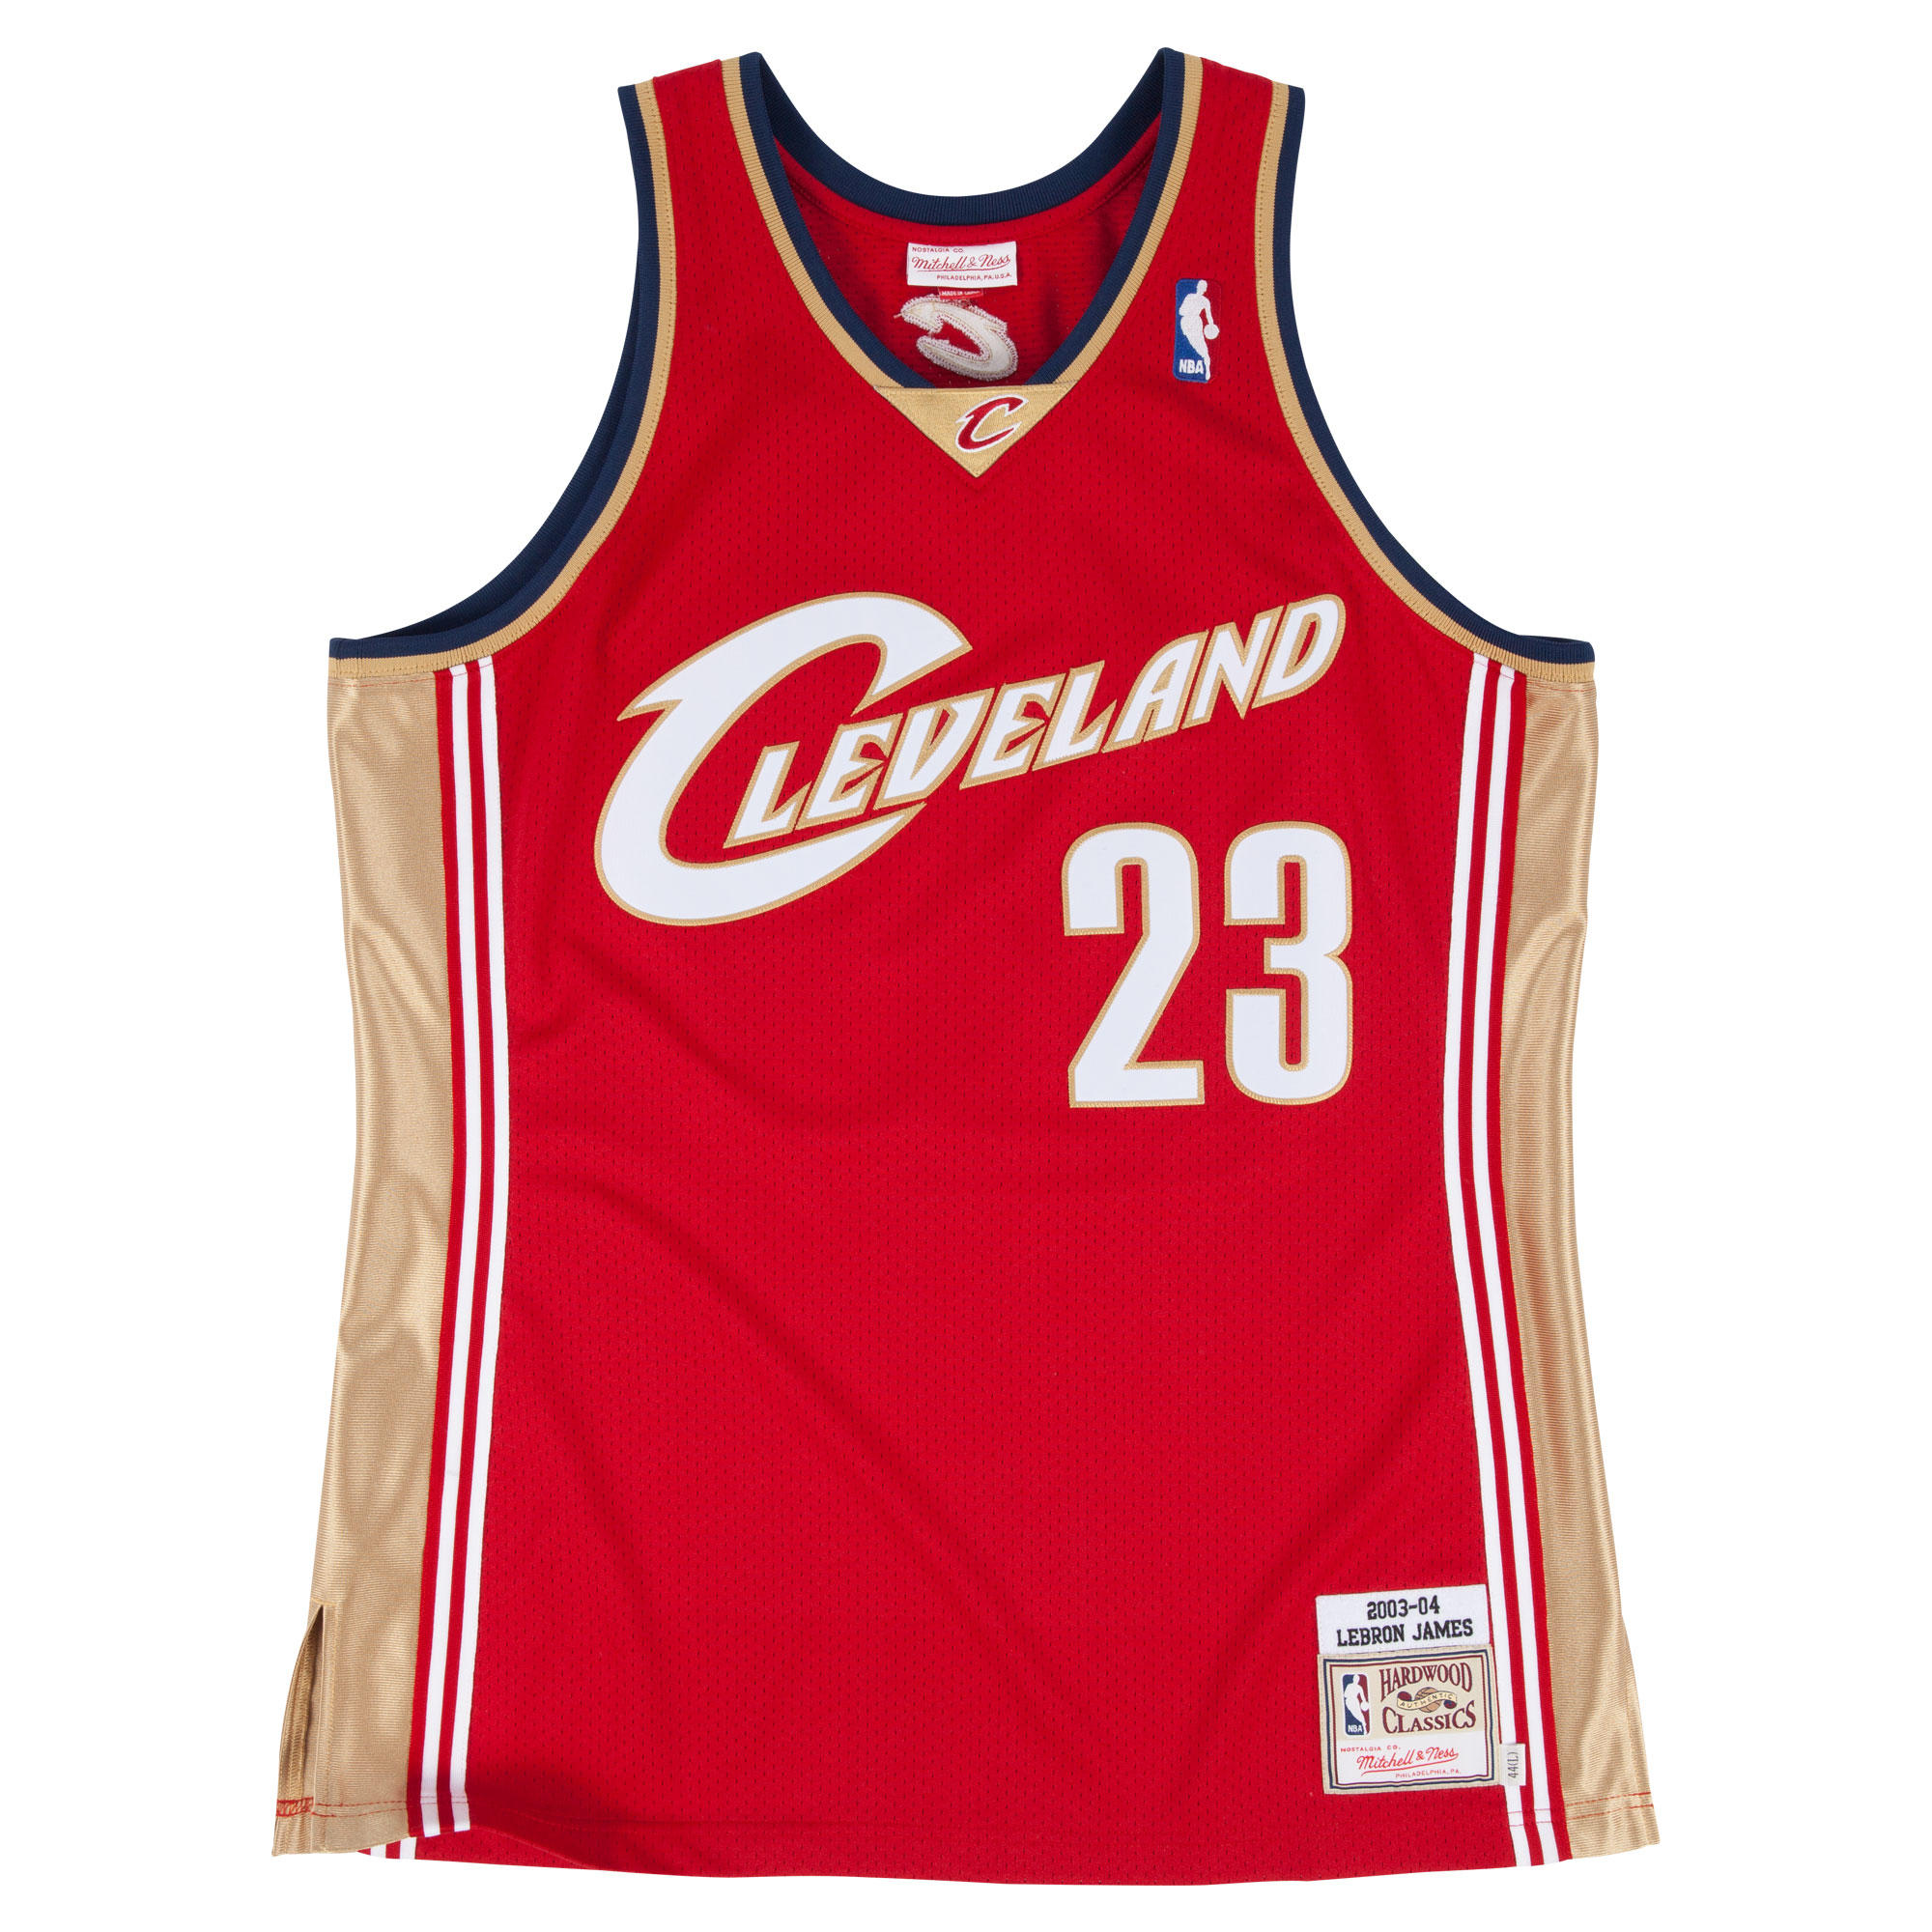 823675c6c7d ... free shipping 2003 04 lebron james authentic jersey cleveland cavaliers  mitchell ness nostalgia co. 8110c